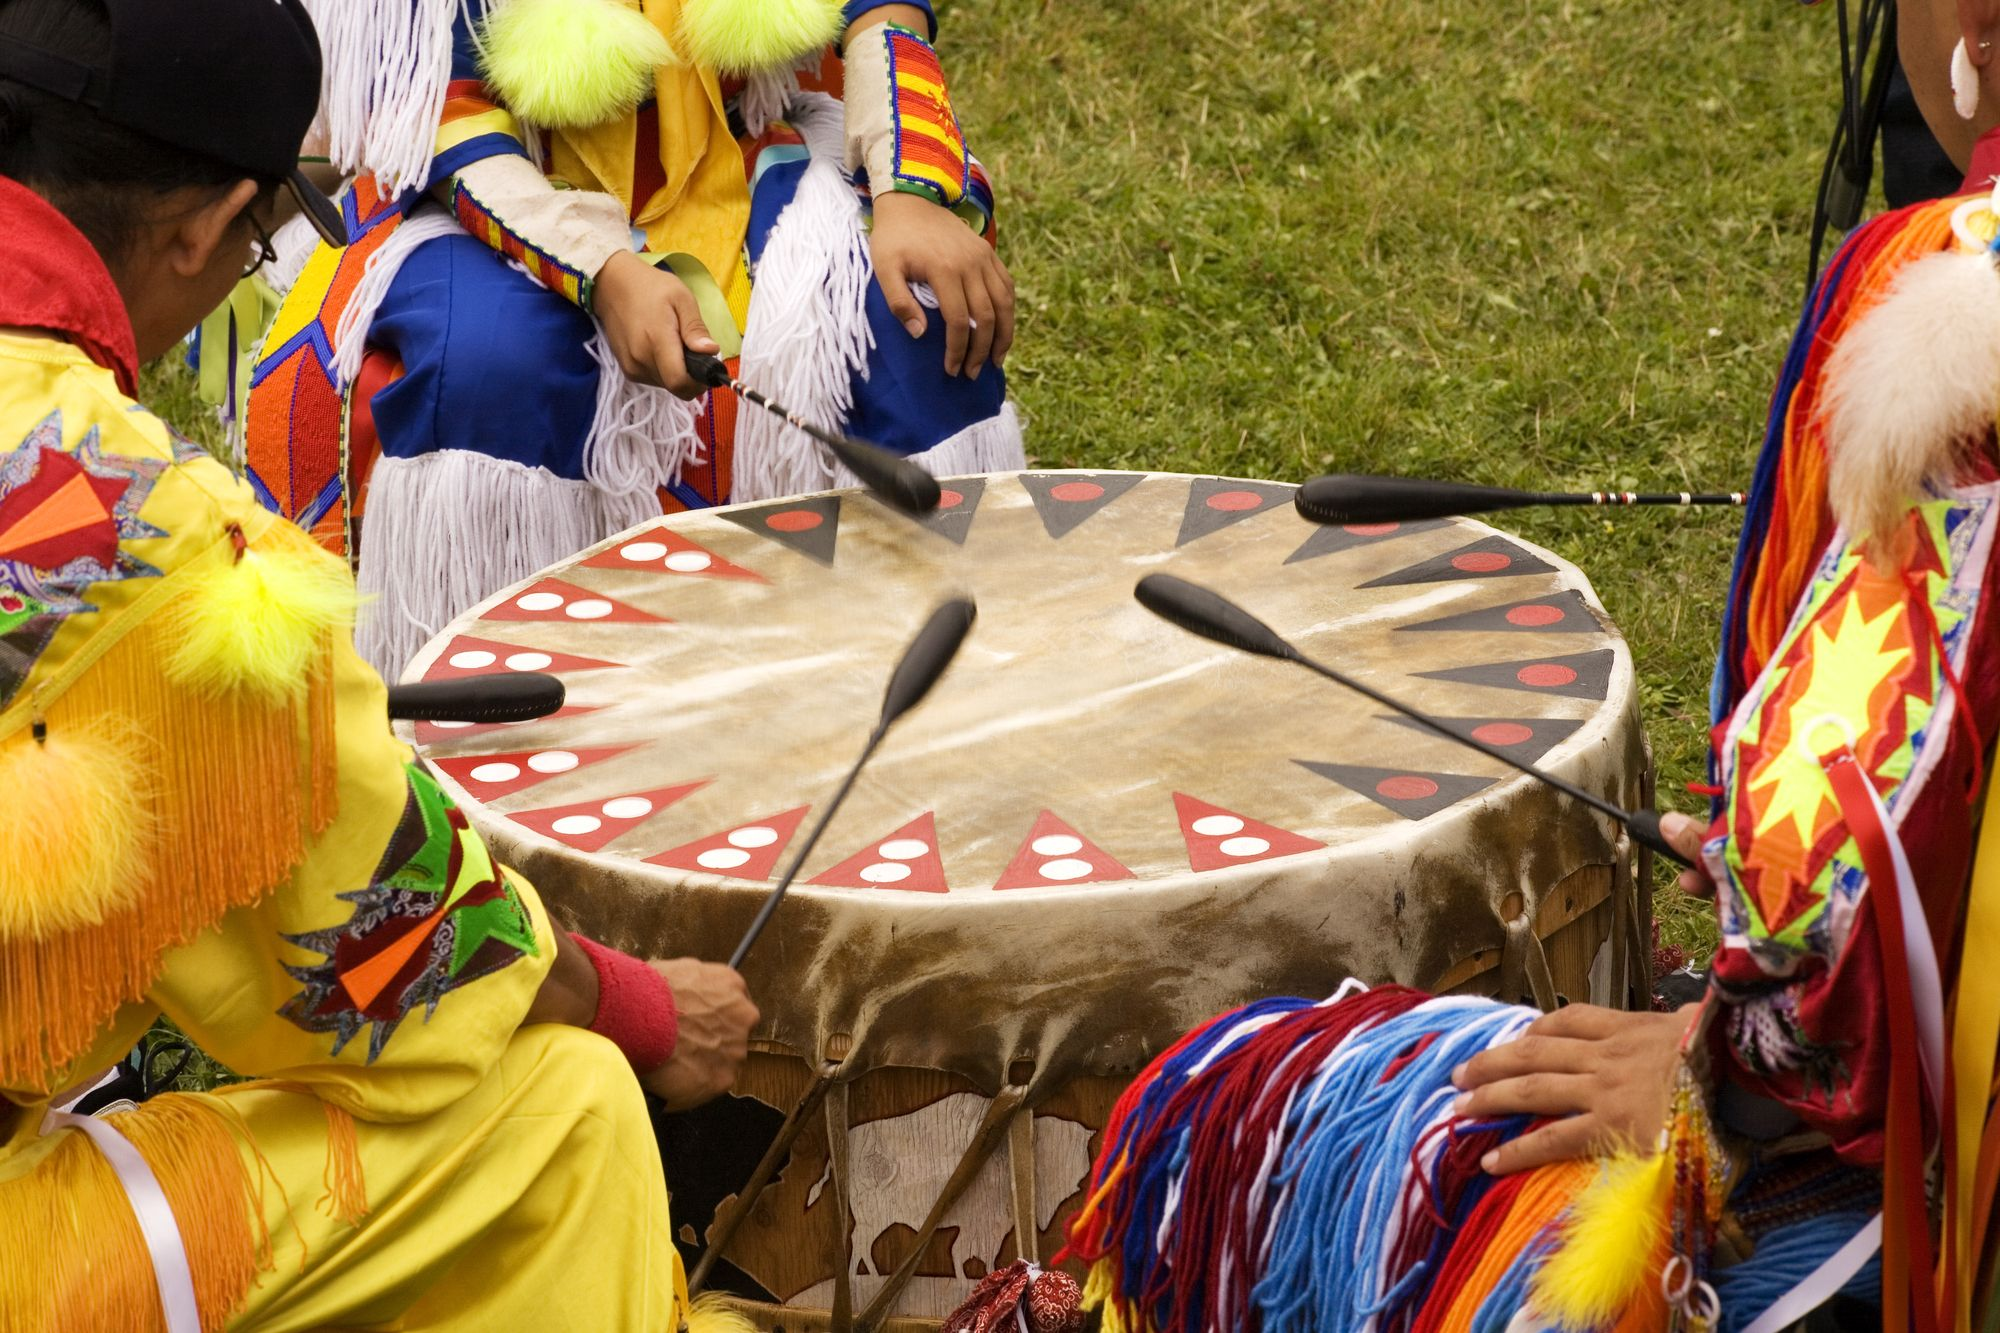 Indians around a drum at a Pow Wow Indians druming